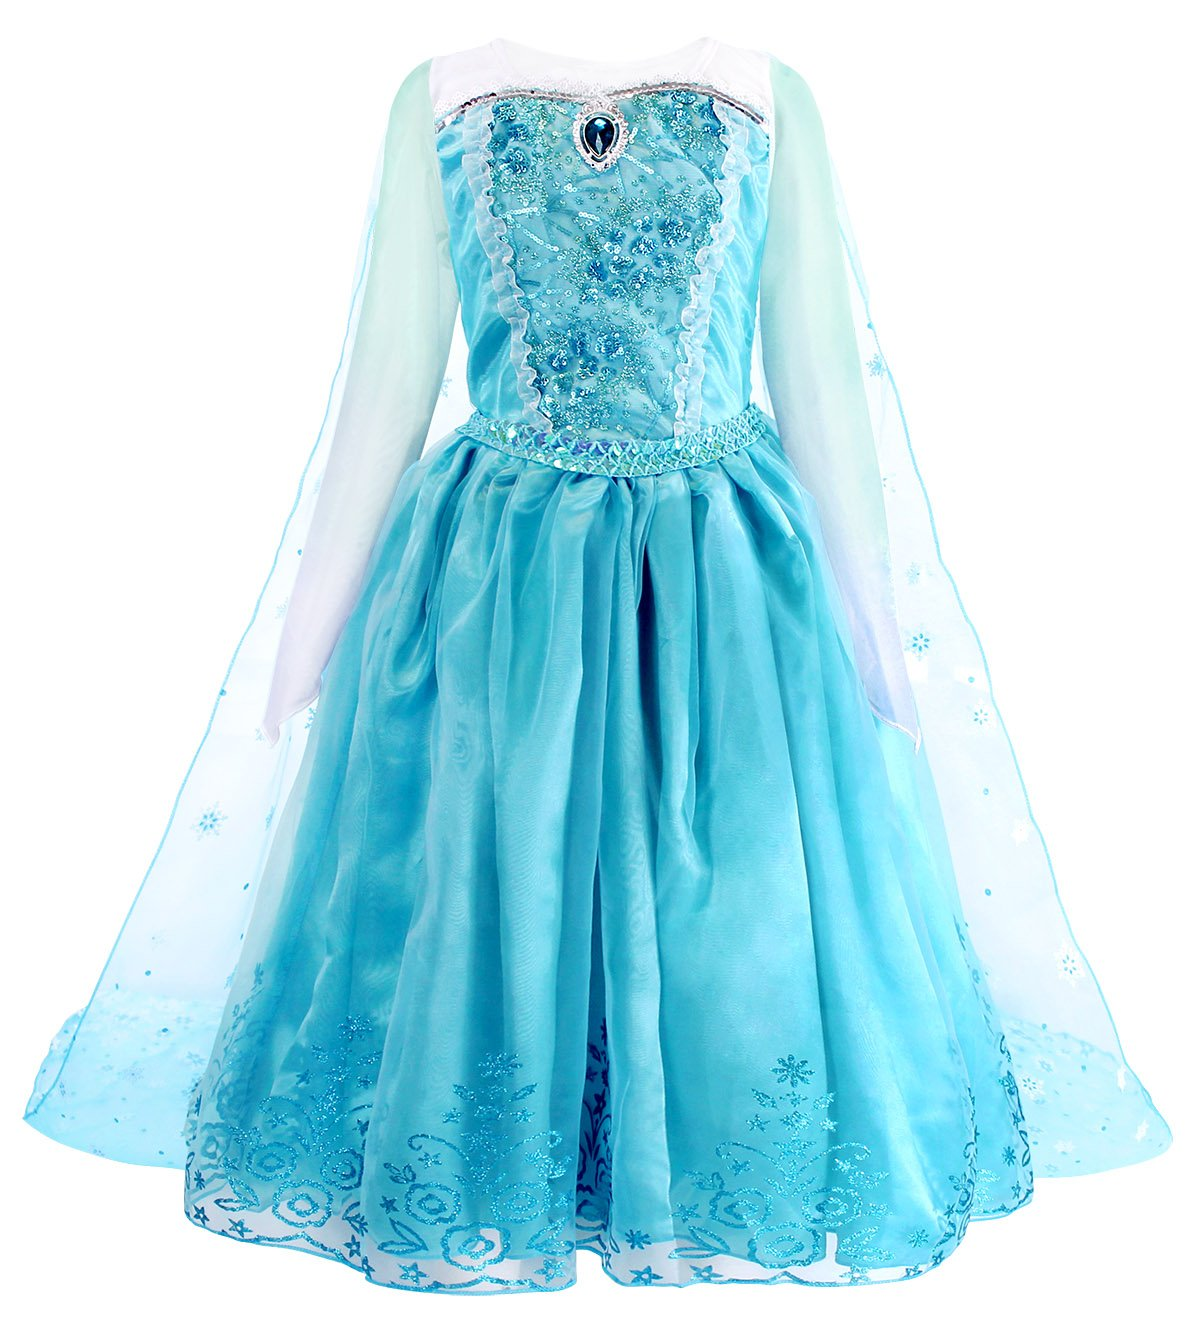 AmzBarley Snow Queen Elsa Costume Girls Princess Dress Halloween Fancy Party Dress Up with Shiny Cape for Kids Snow Queen Elsa Dress